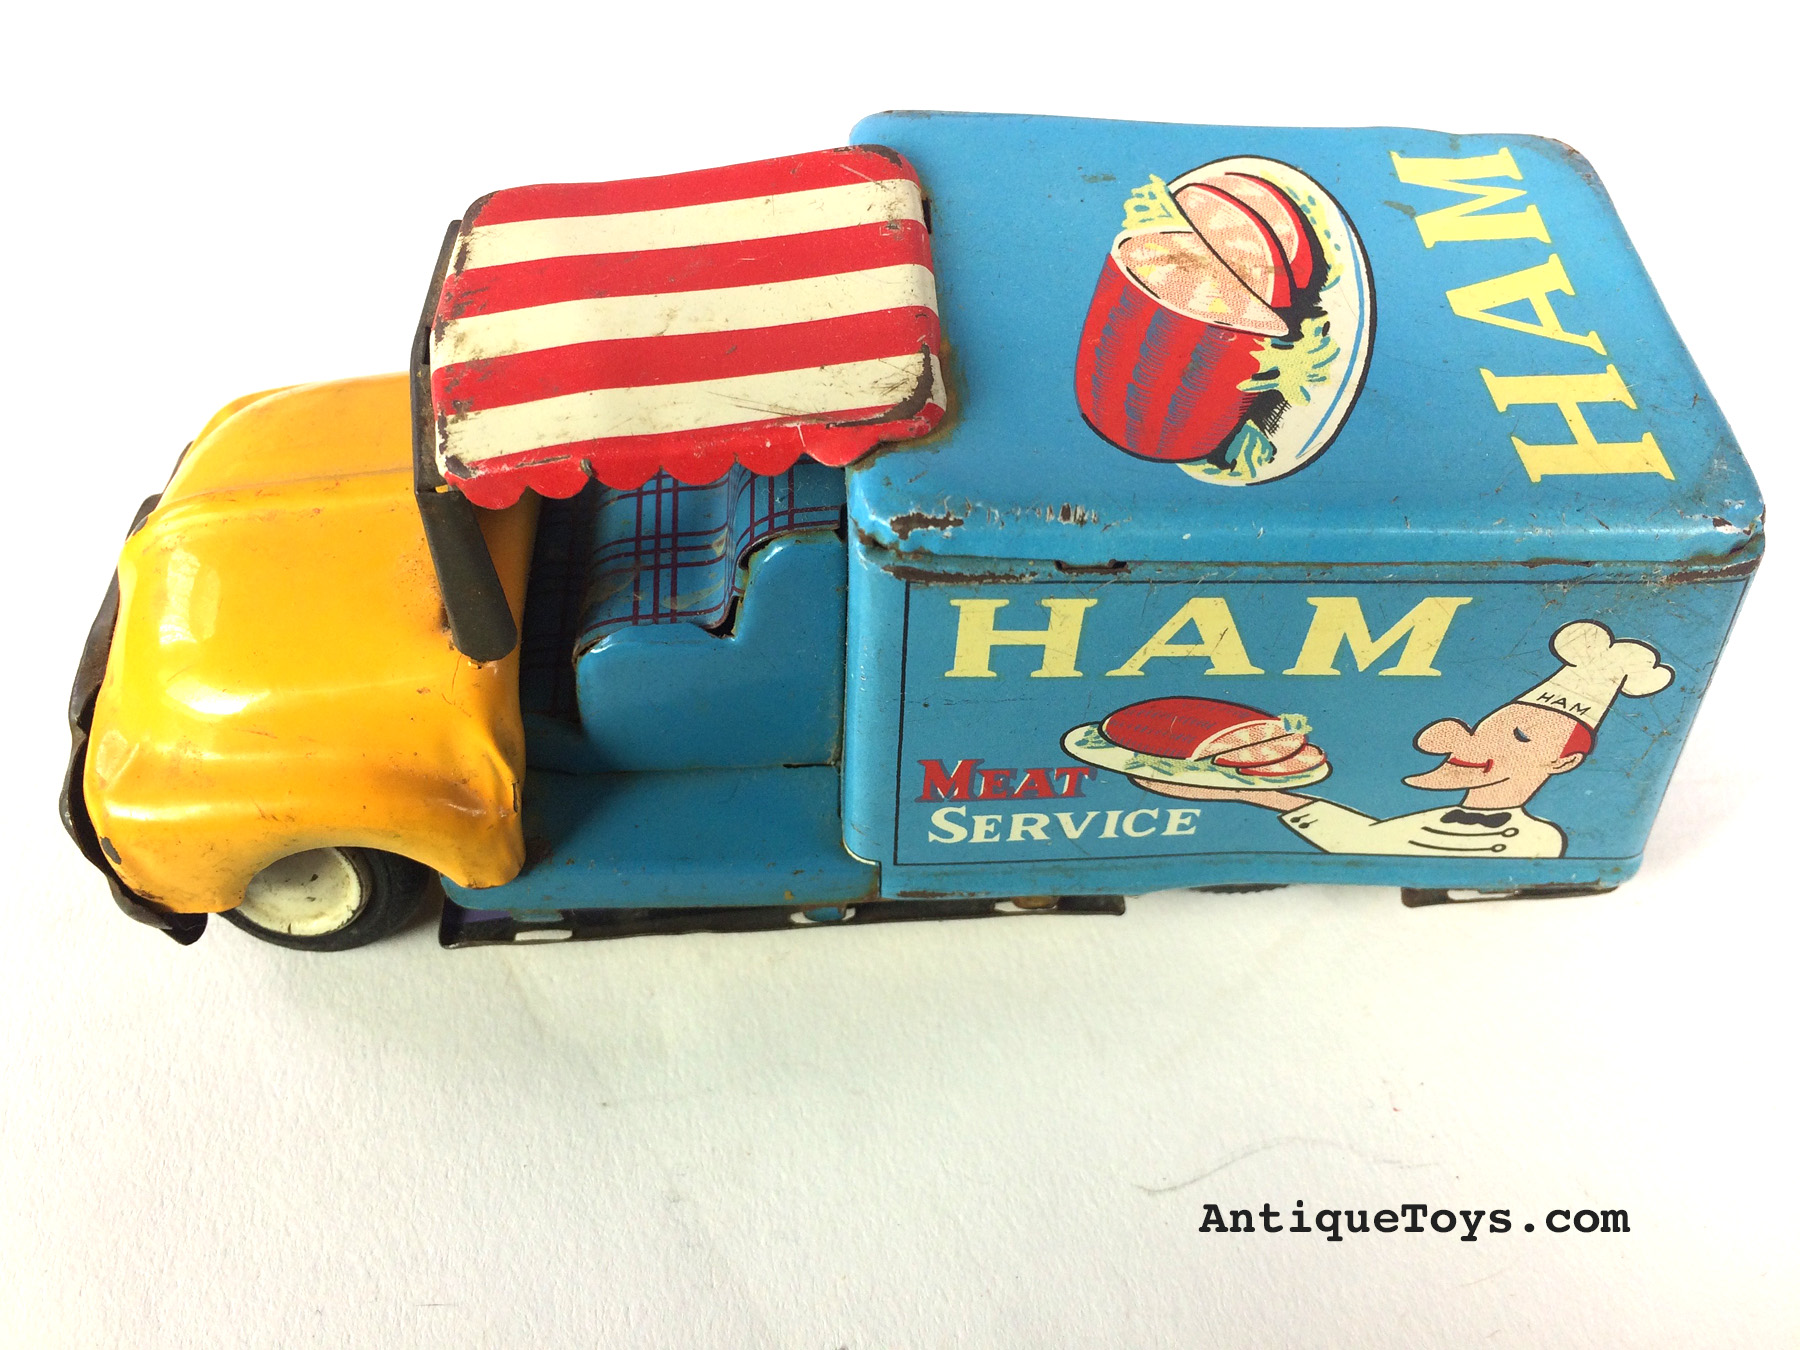 Ham Meat service Made in Japan tin truck